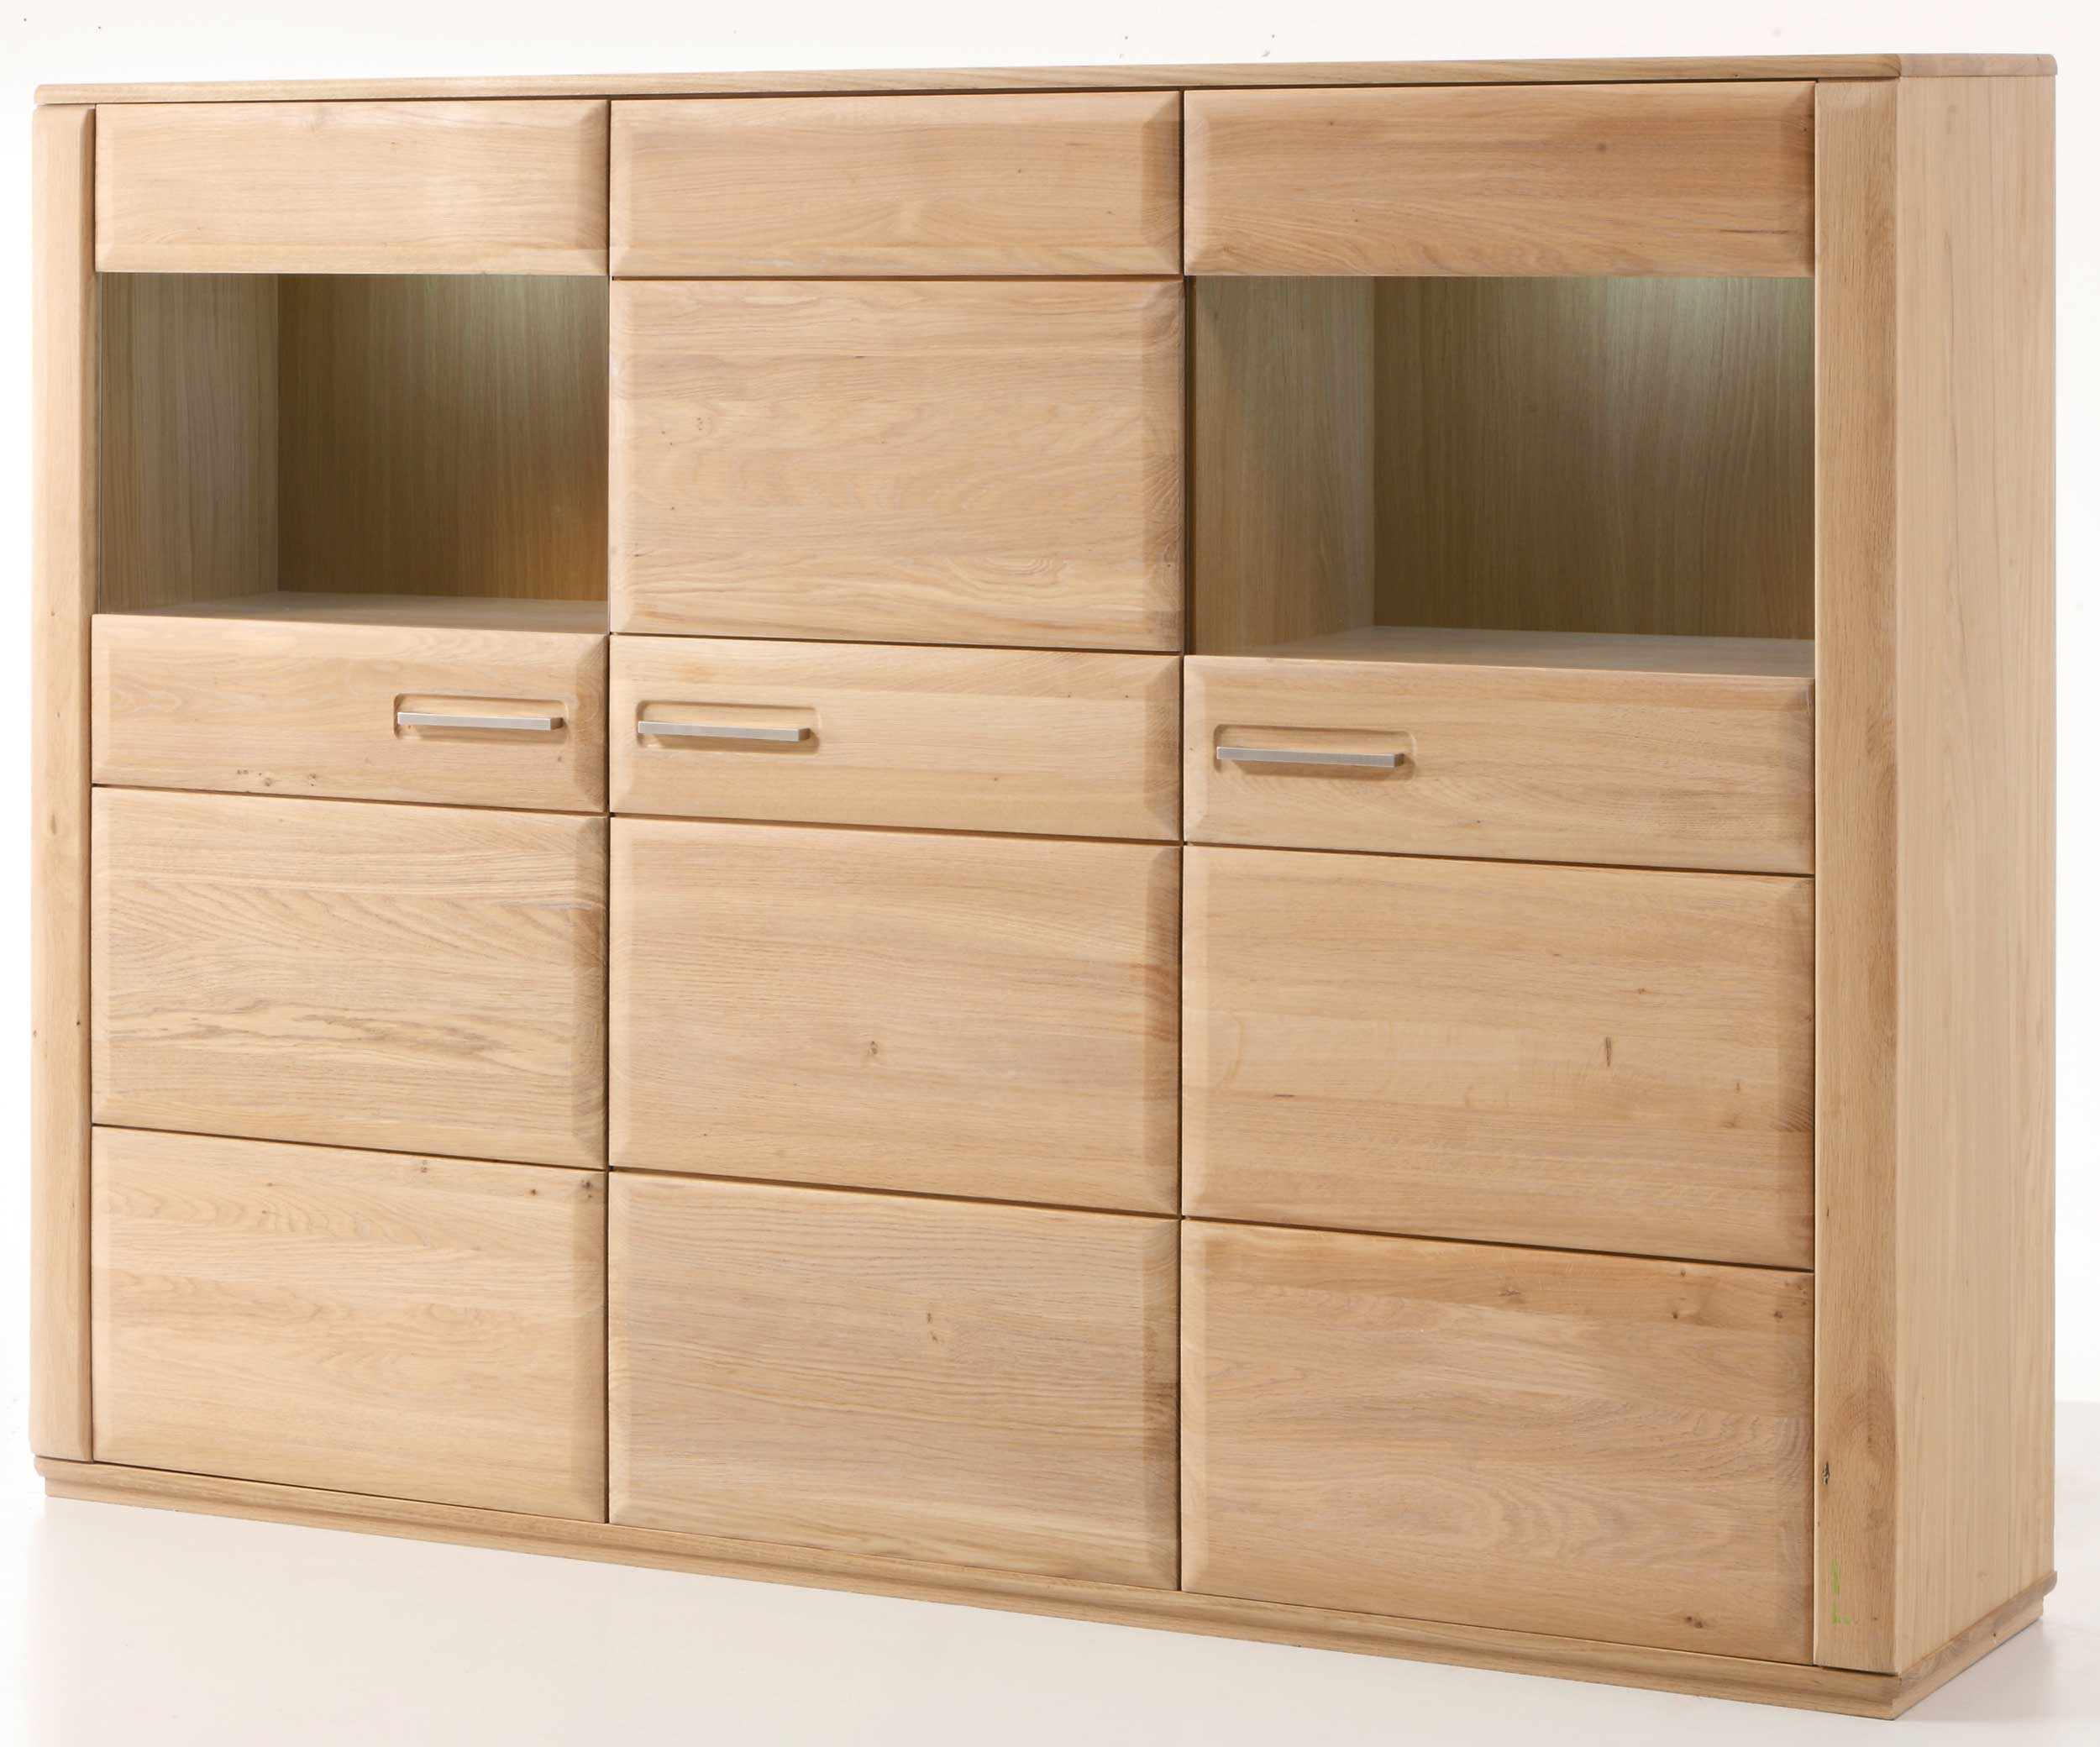 Highboard Kernbuche Teilmassiv Mca Sena Highboard Kernbuche Oder Eiche Bianco Teilmassiv ...